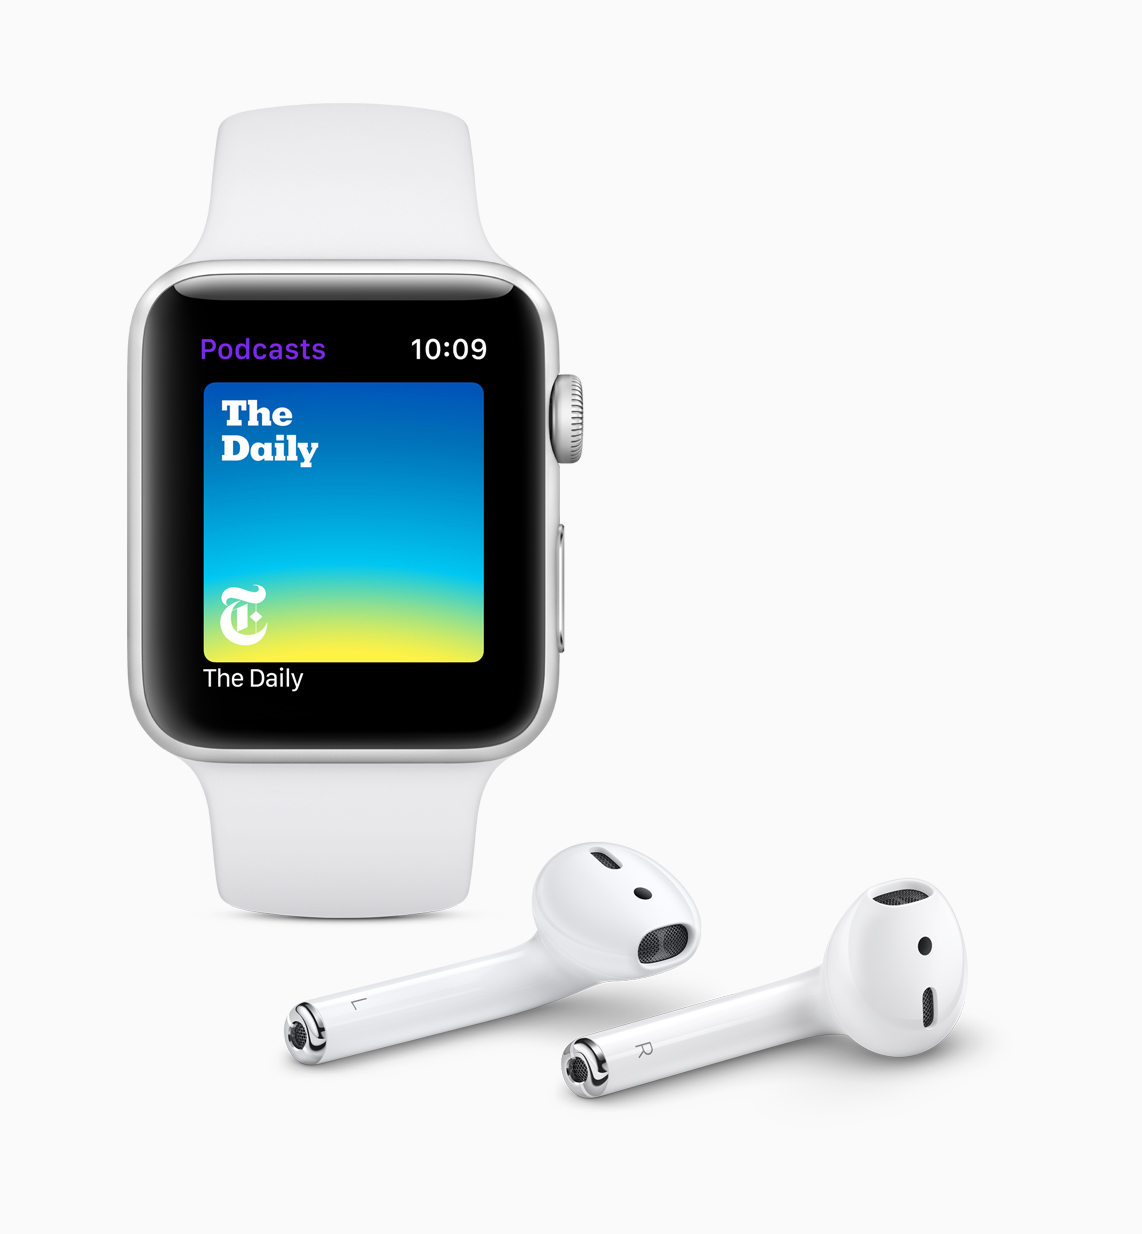 Apple-watchOS_5-Podcasts-screen-06042018.jpg